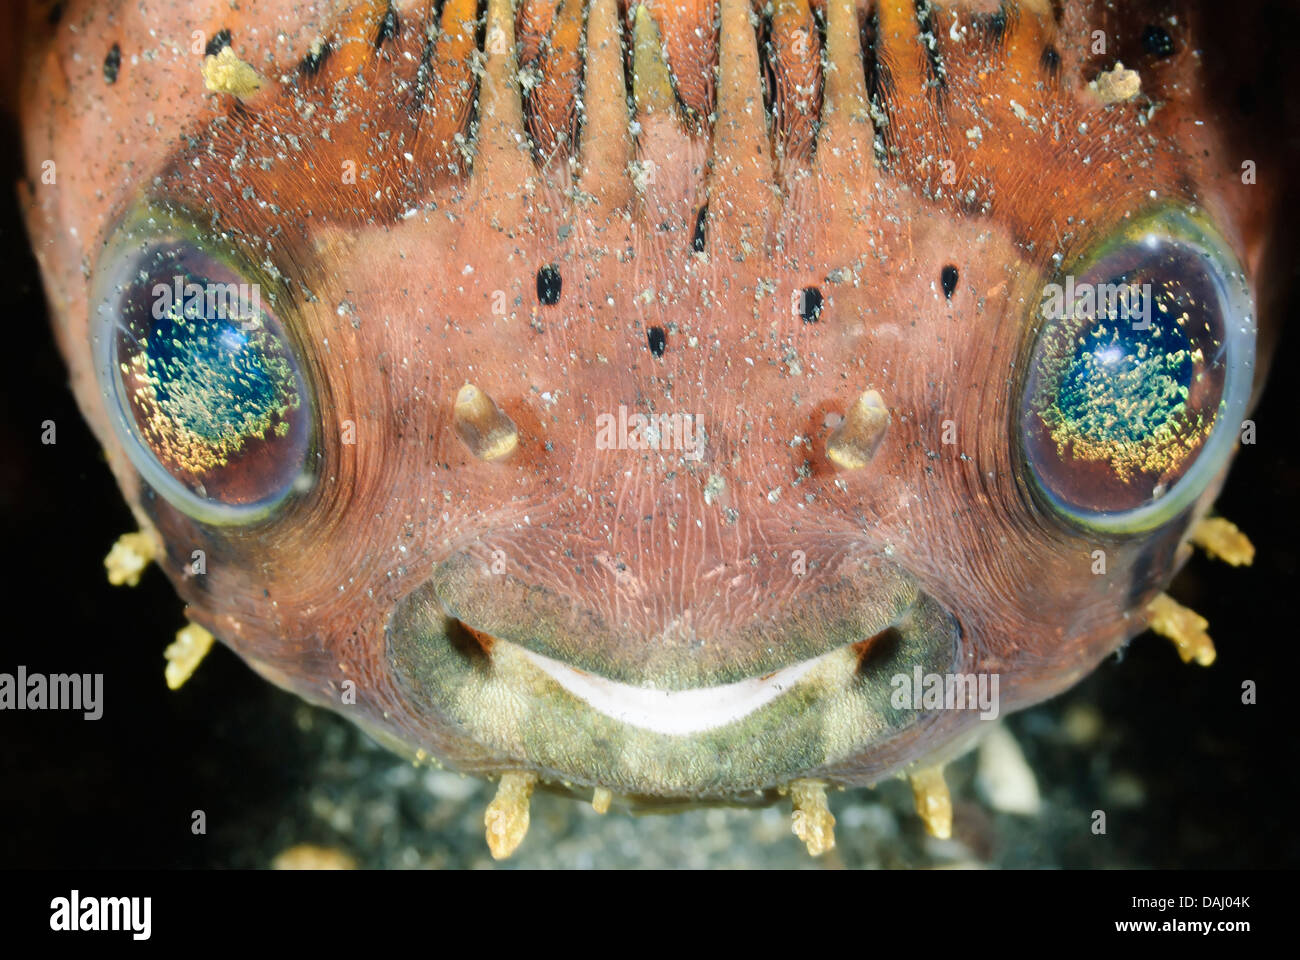 Balloonfish, Diodon holocanthus, Lembeh Strait, Sulawesi, Indonesia, Pacific - Stock Image